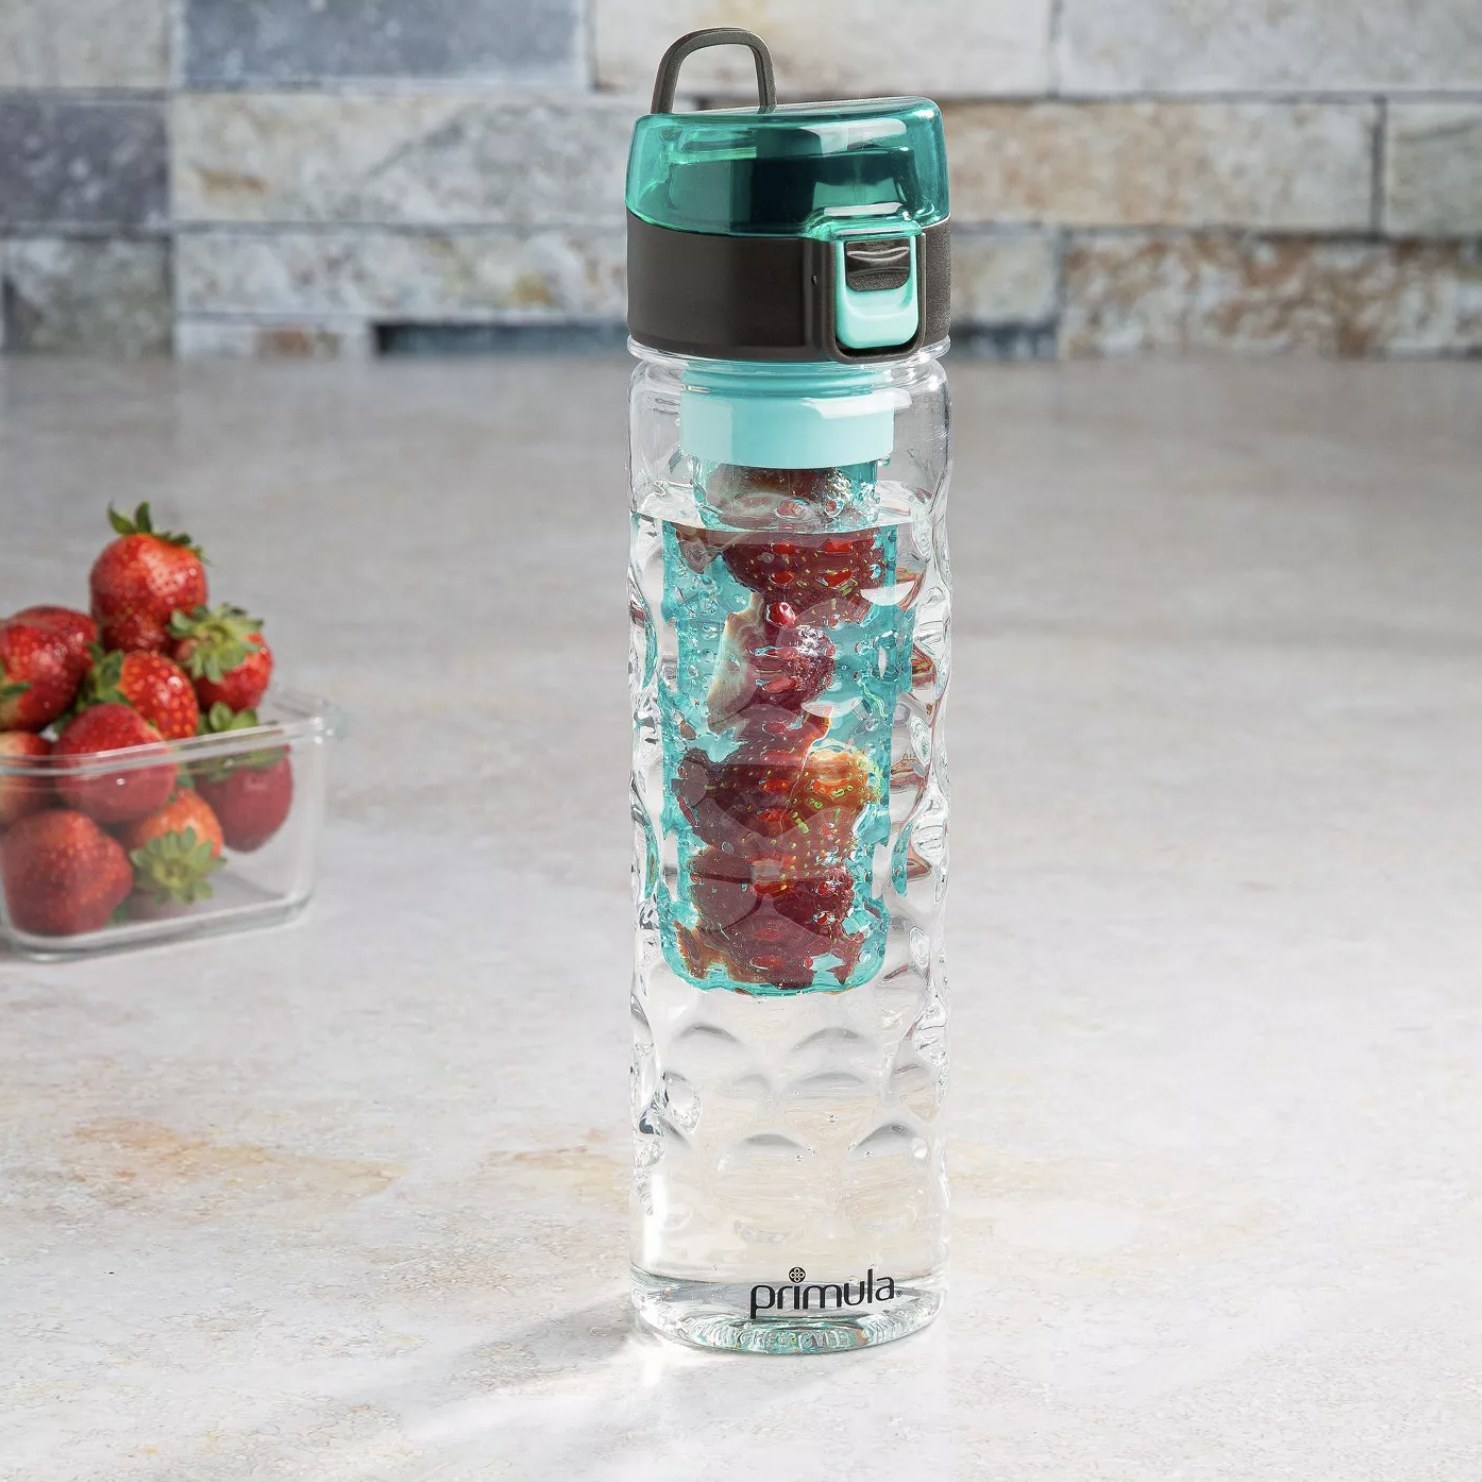 A transparent water bottle with an infuser full of fruit on the inside